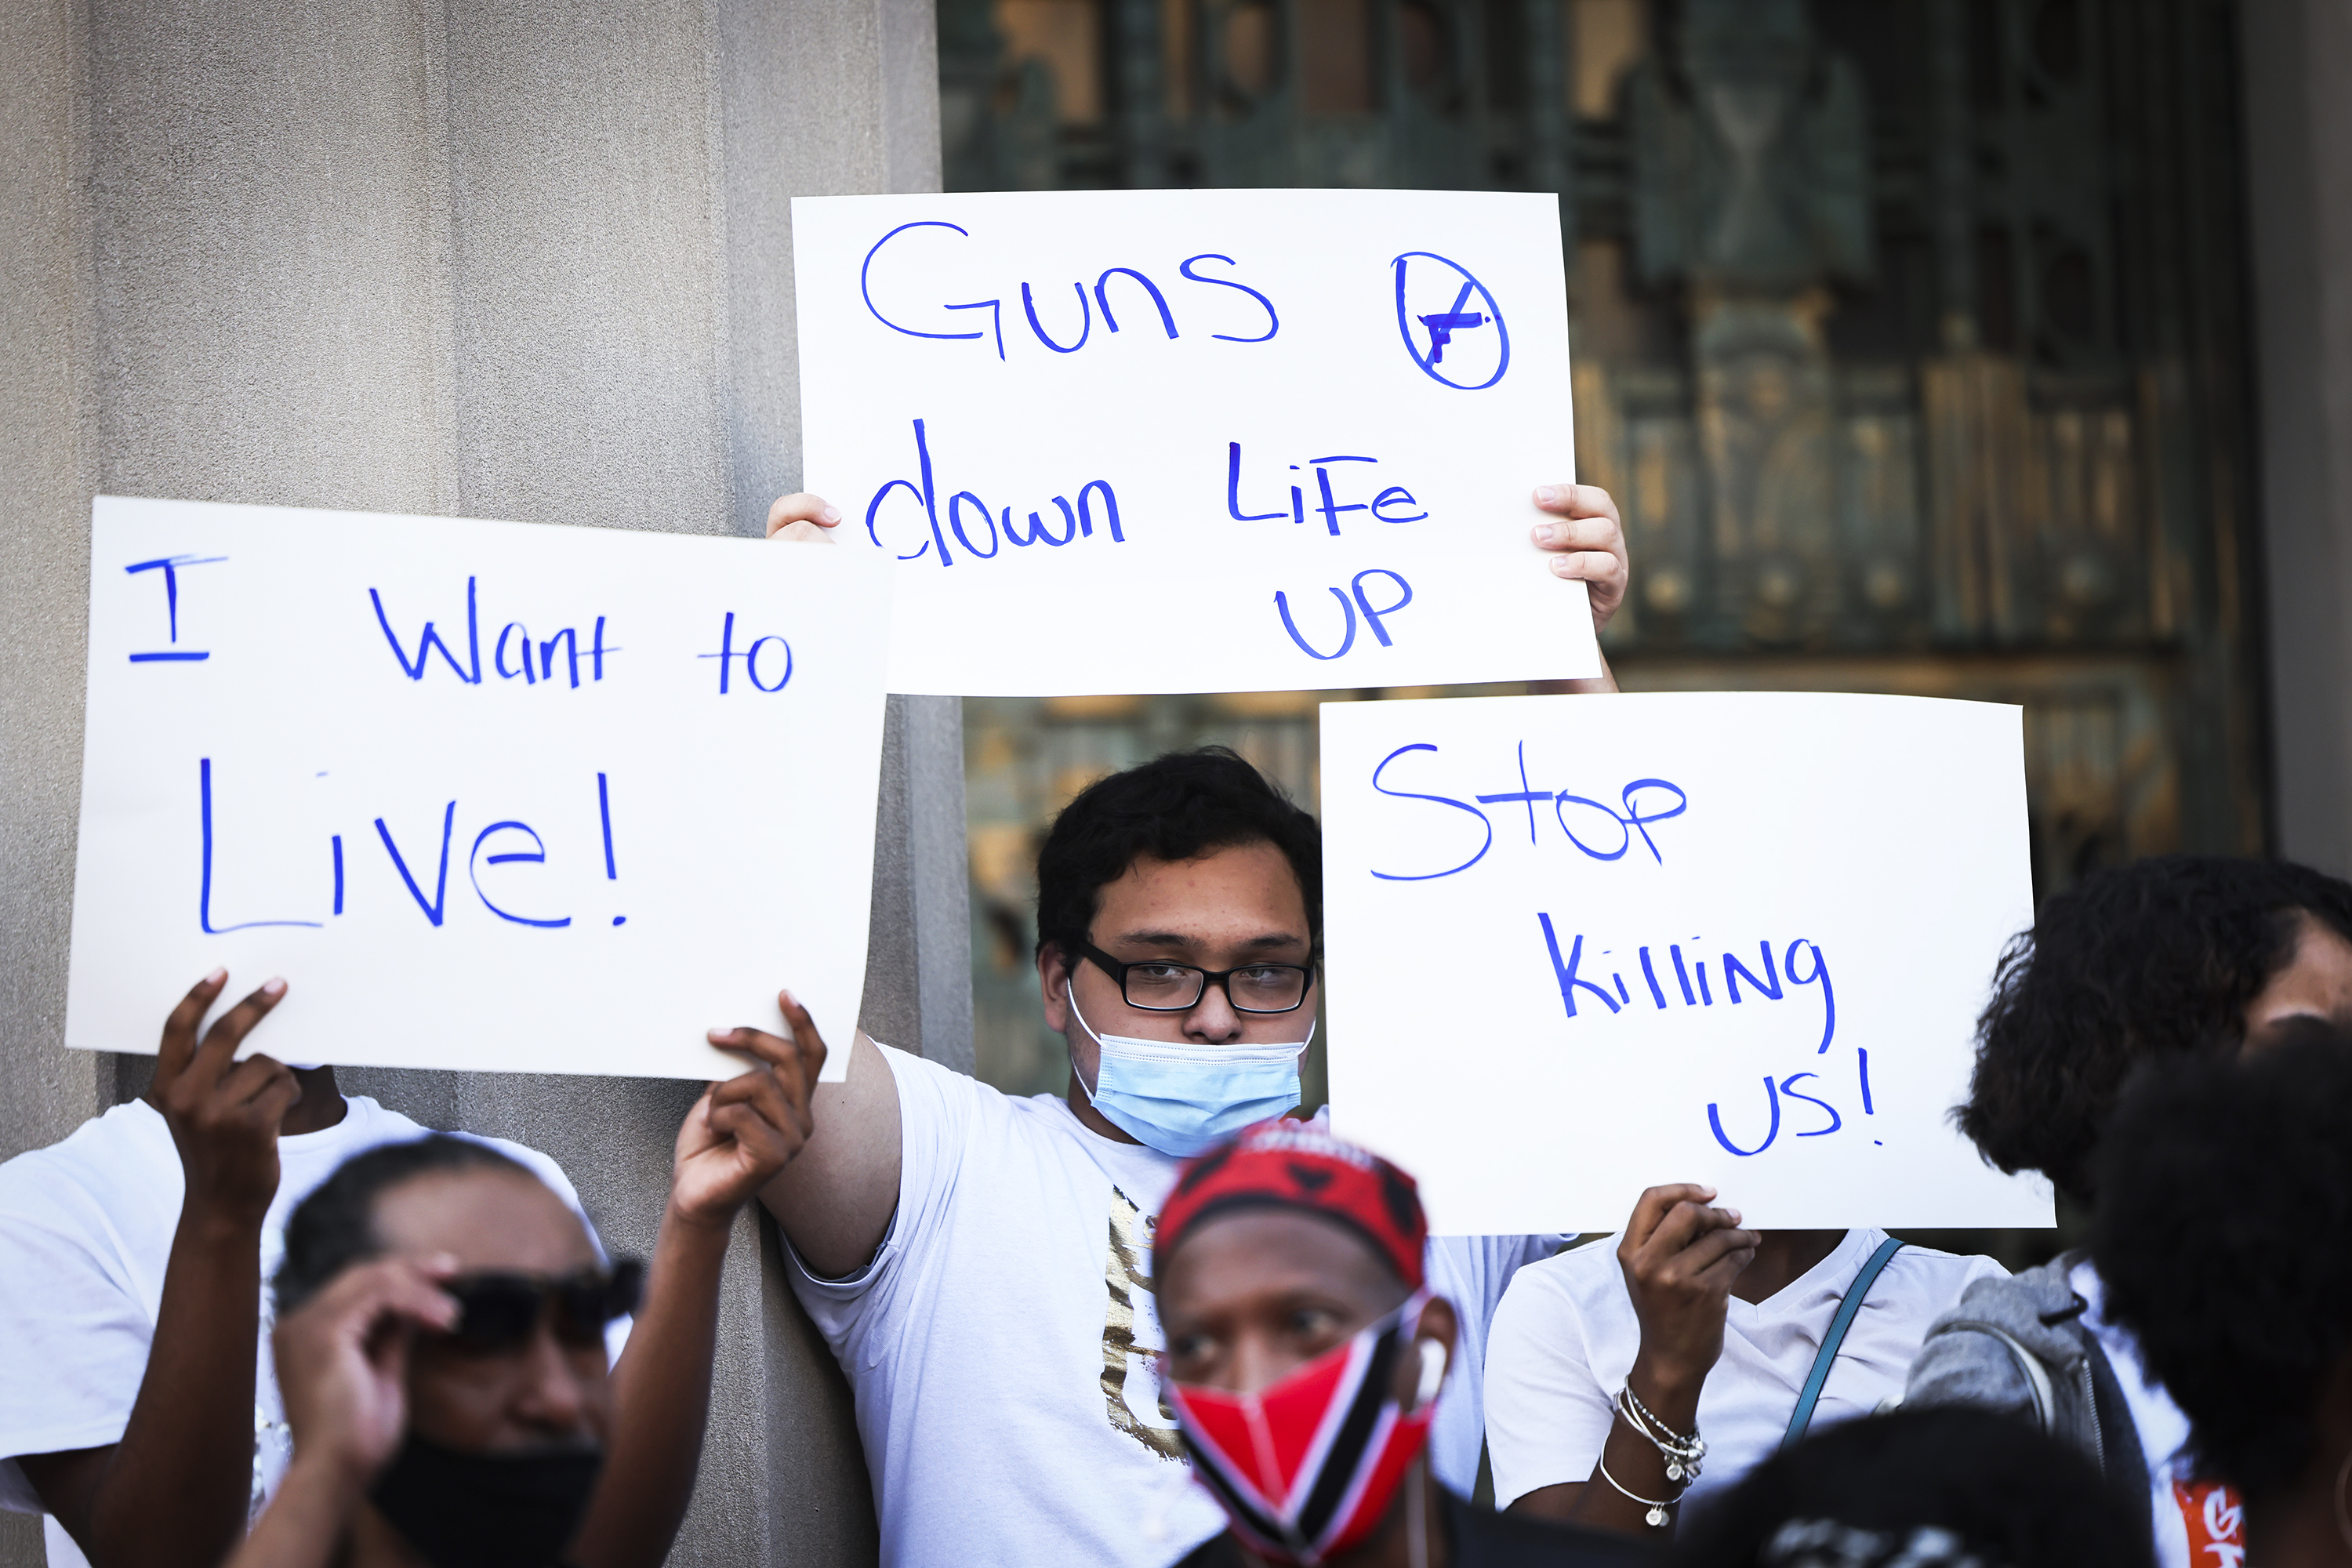 """People hold up signs such as """"Stop killing us!"""" at a rally."""